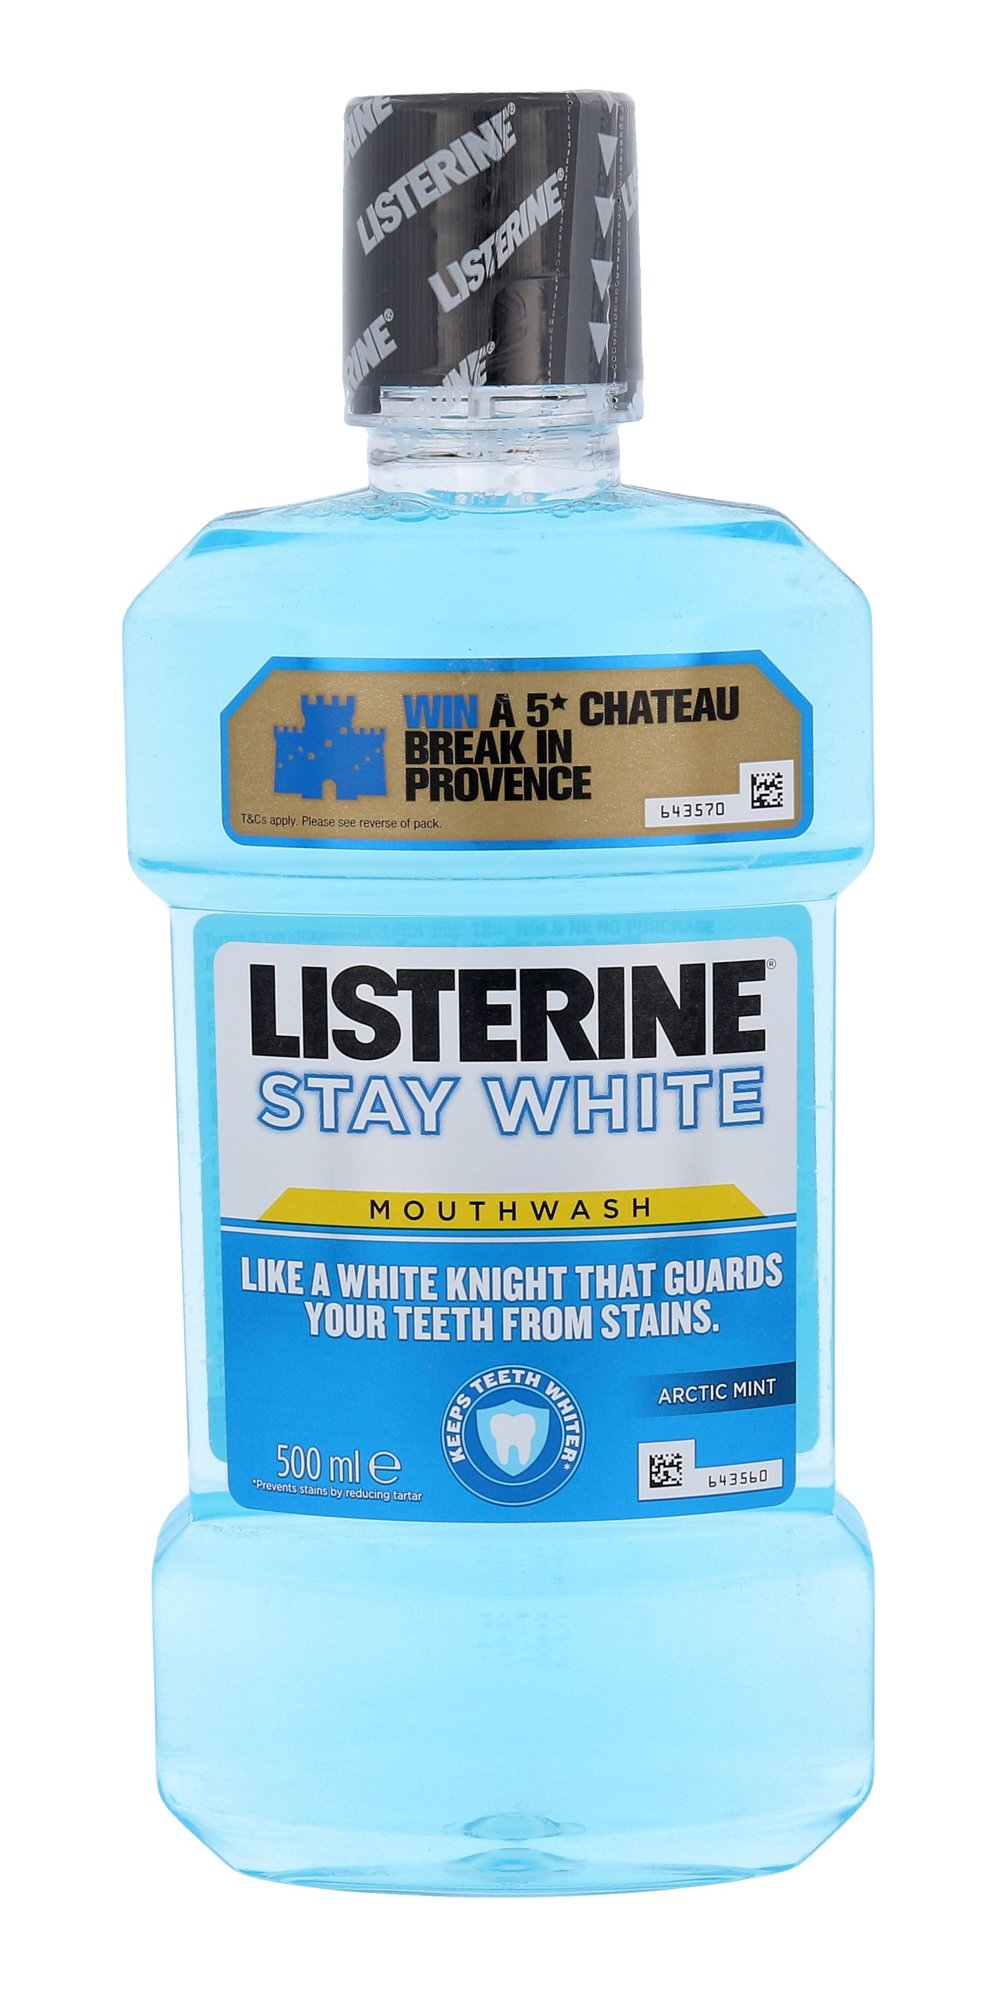 Listerine Mouthwash Stay White